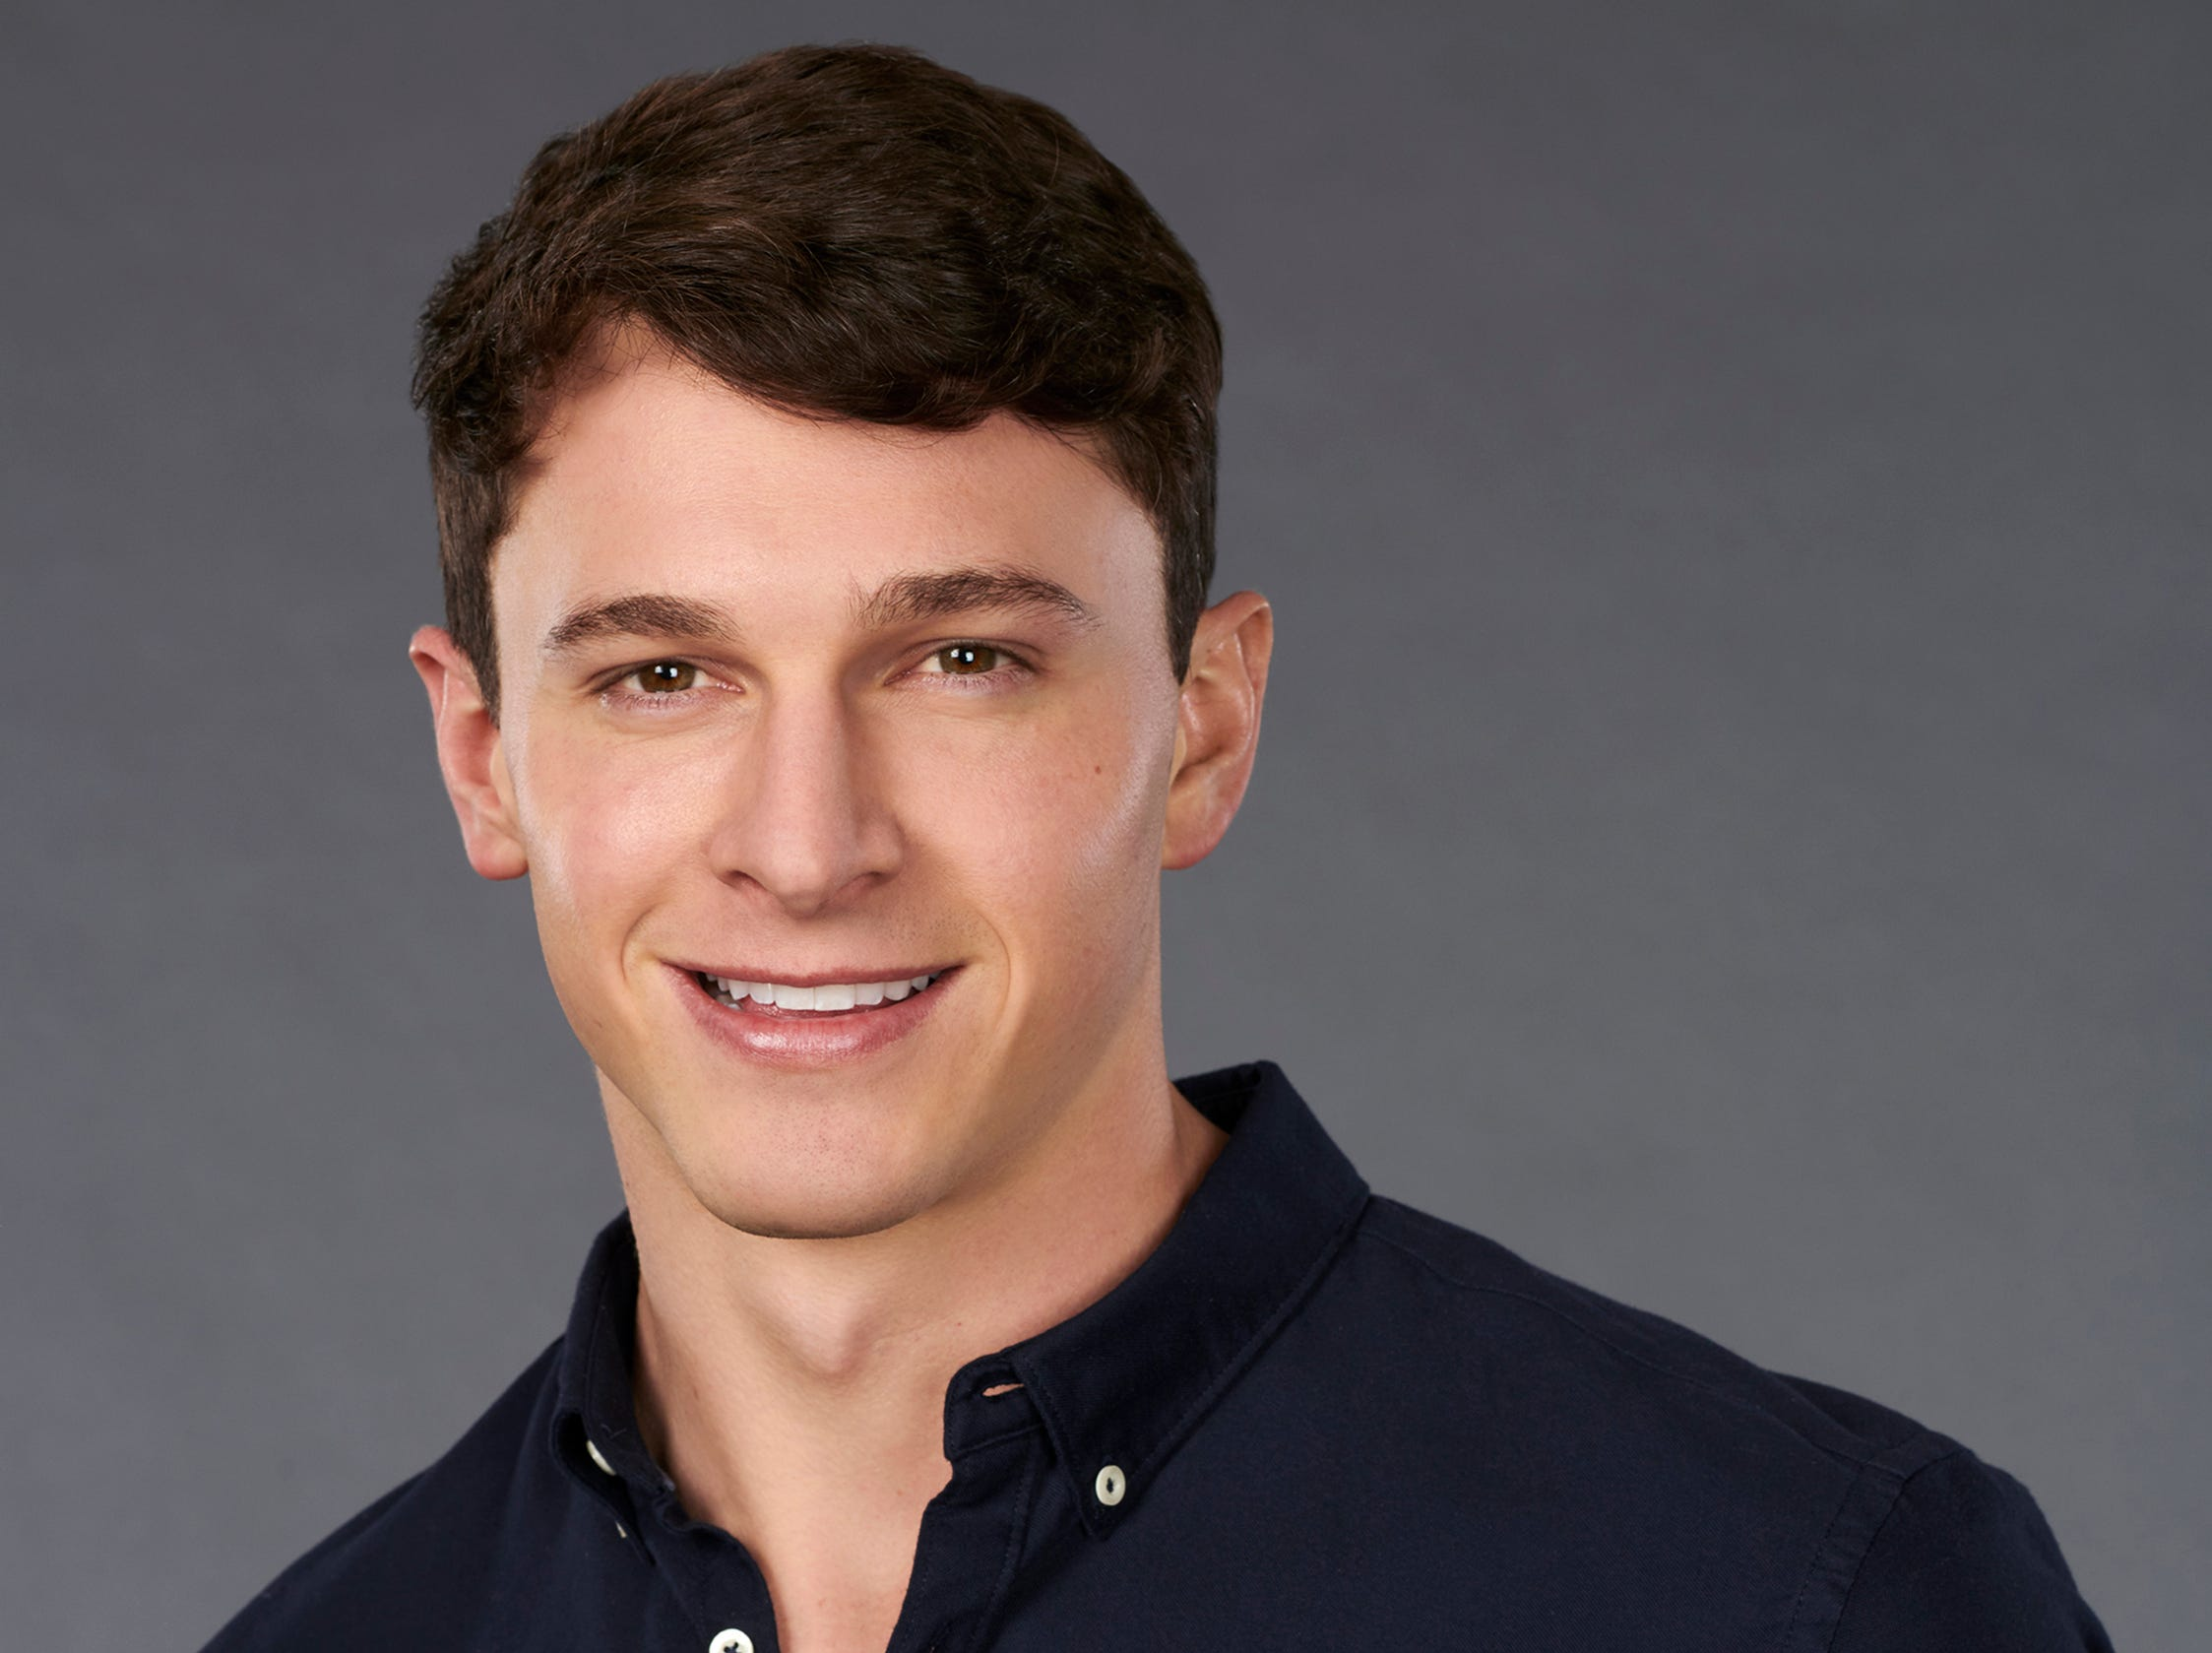 """The Bachelorette"" Season 23 contestant:  Connor S., 24, Dallas, investment analyst"